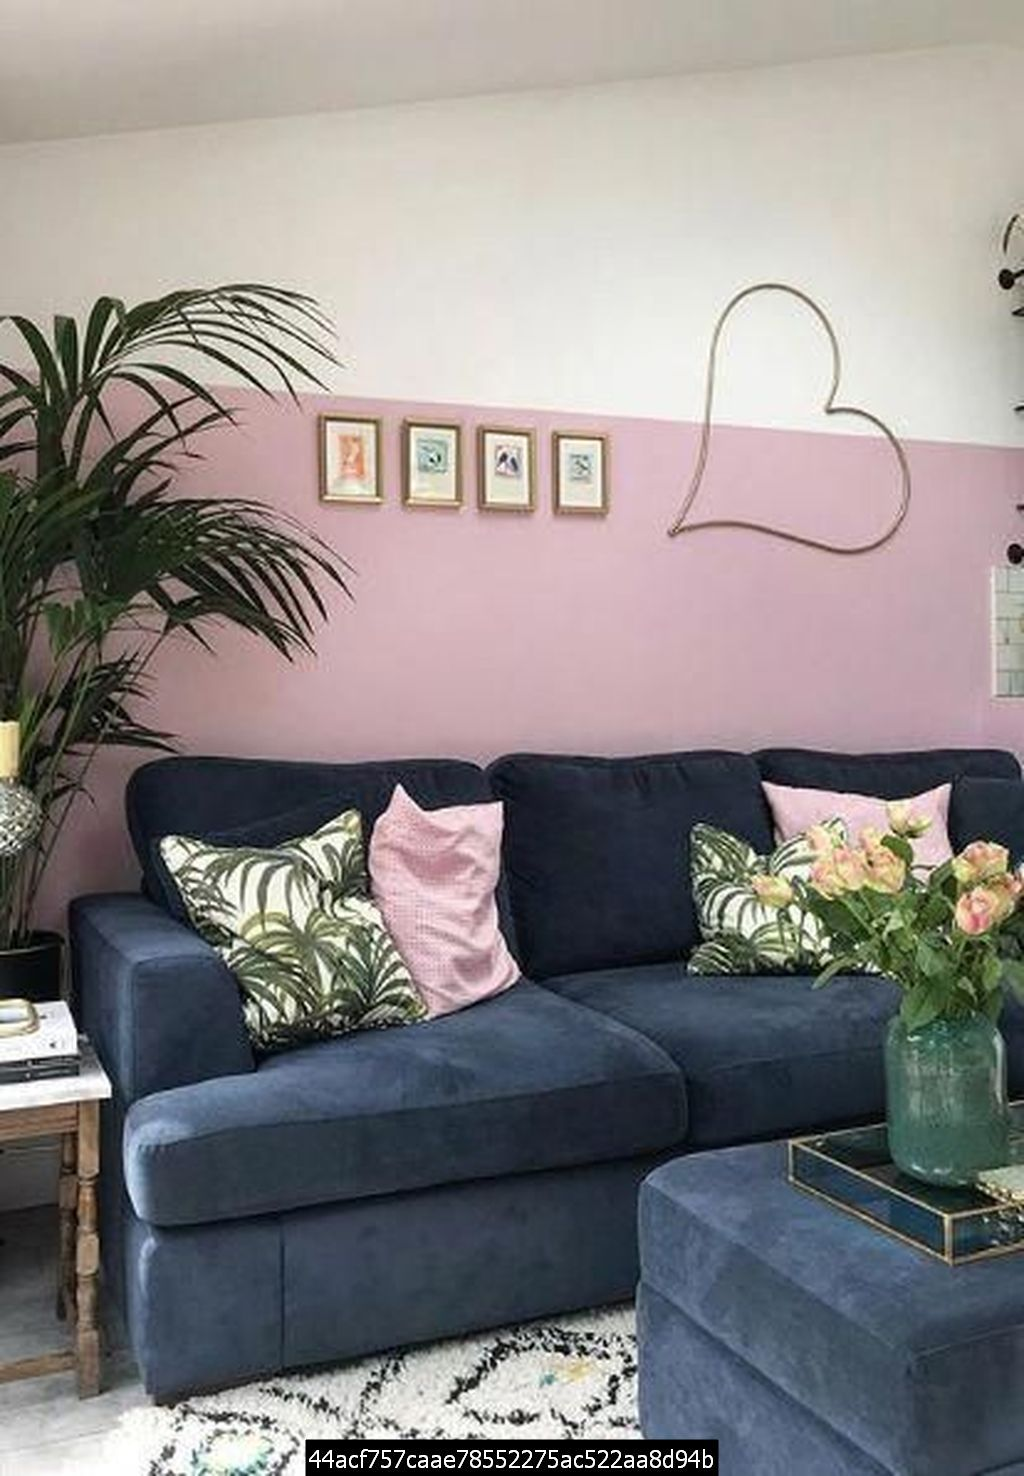 49 Charming Pink Living Room Design Ideas For Your Daughter In 2020 Pink Living Room Decor Navy Living Room Decor Pink Living Room #pink #and #blue #living #room #ideas